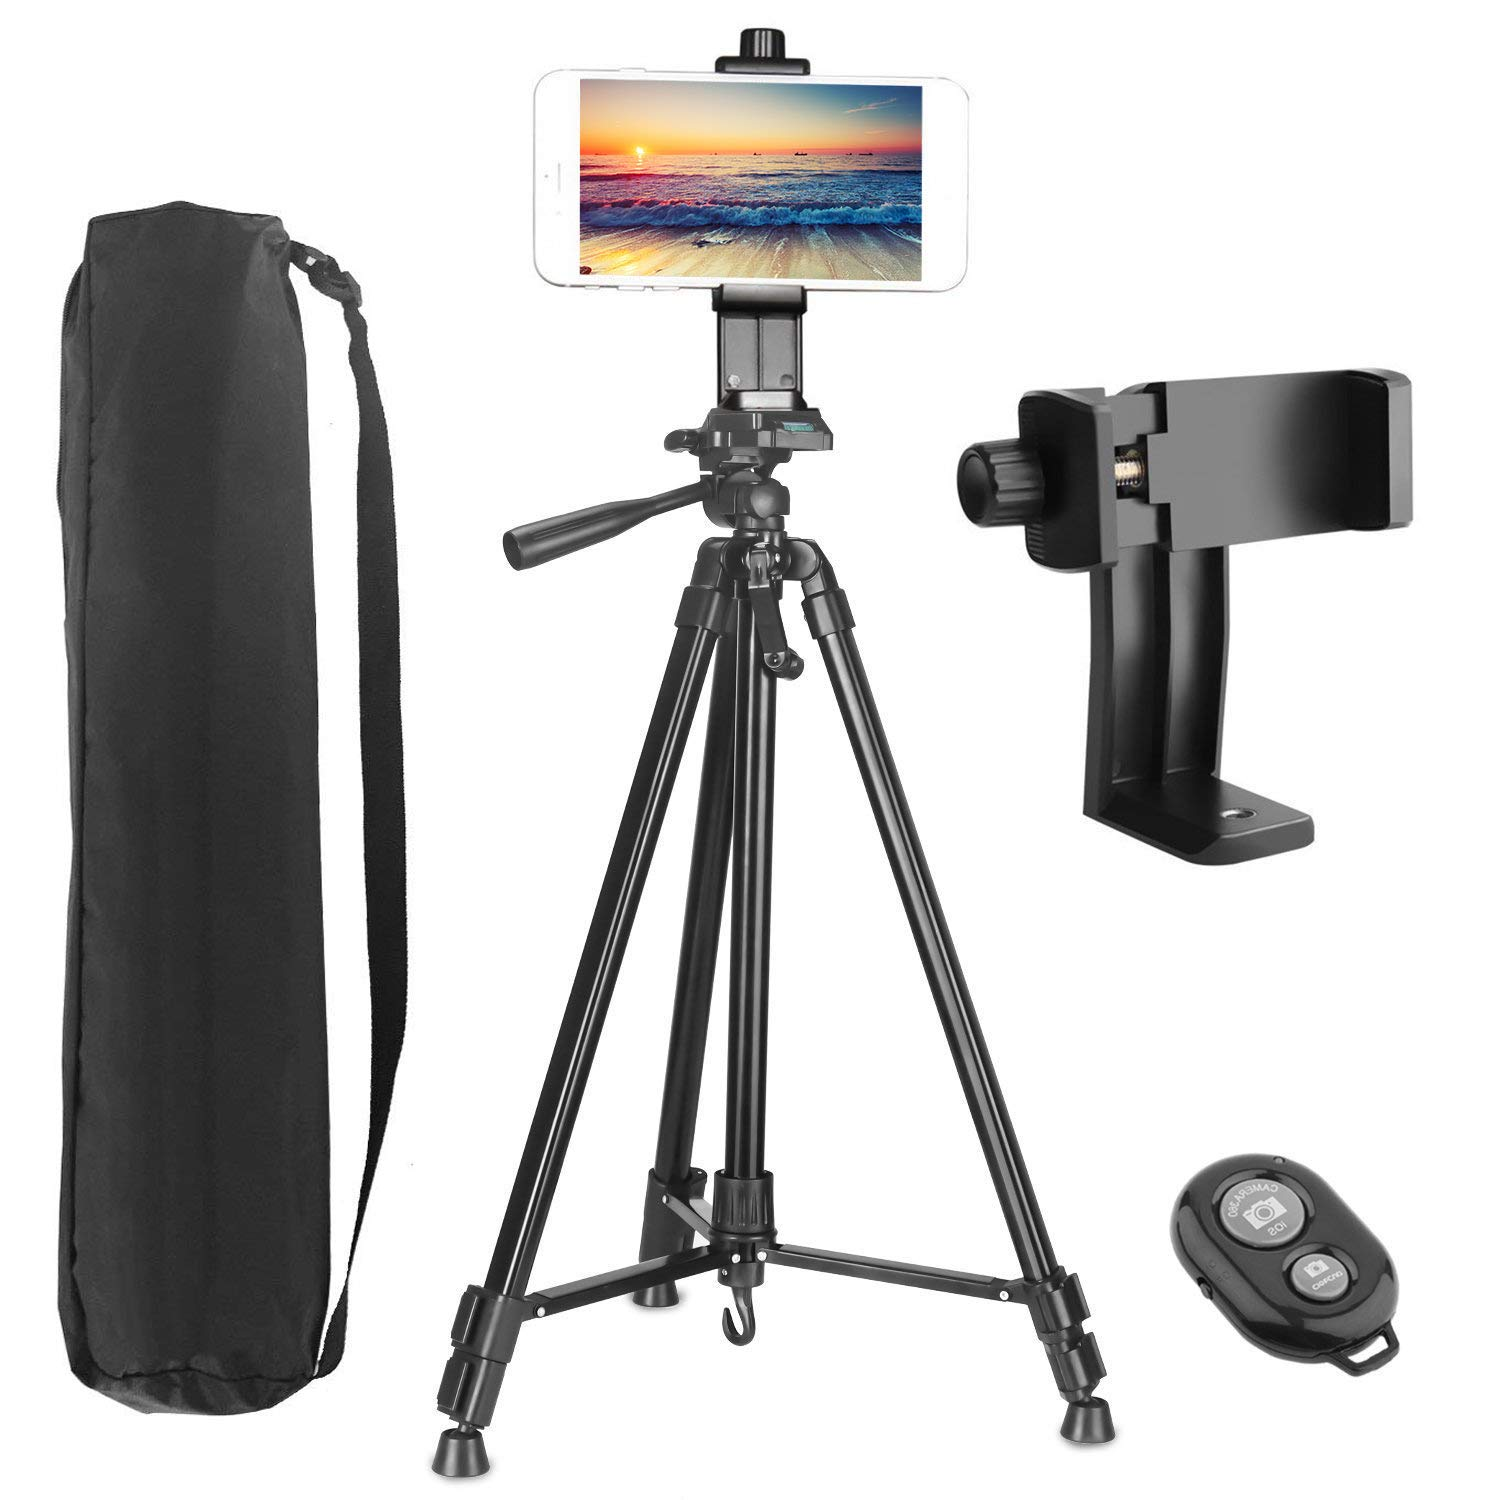 Phone Tripod, PEYOU Upgraded 62'' Aluminum Camera Tripod + 360° Rotation Smartphone Holder Mount + Bluetooth Remote Compatible for iPhone Xs Max XR X 8 7 6 6S Plus,for Galaxy Note 9 8 S10 S9 S8 Plus by Peyou